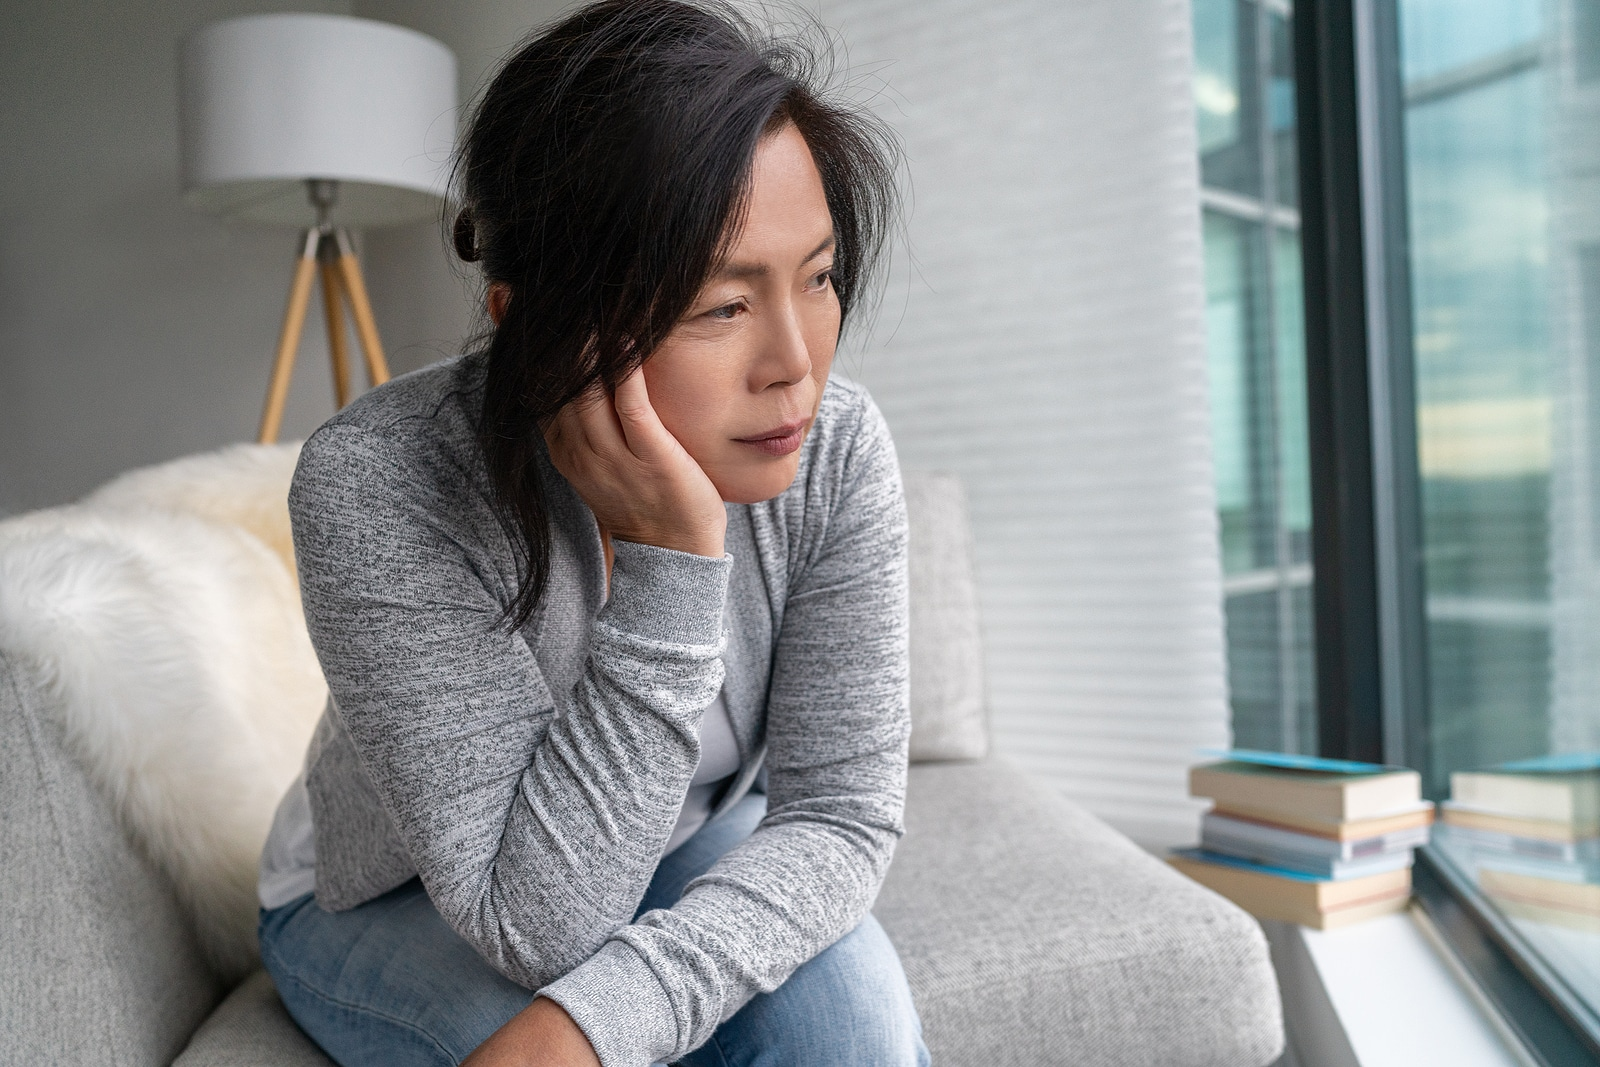 Why am I always tired? 10 things draining your energy